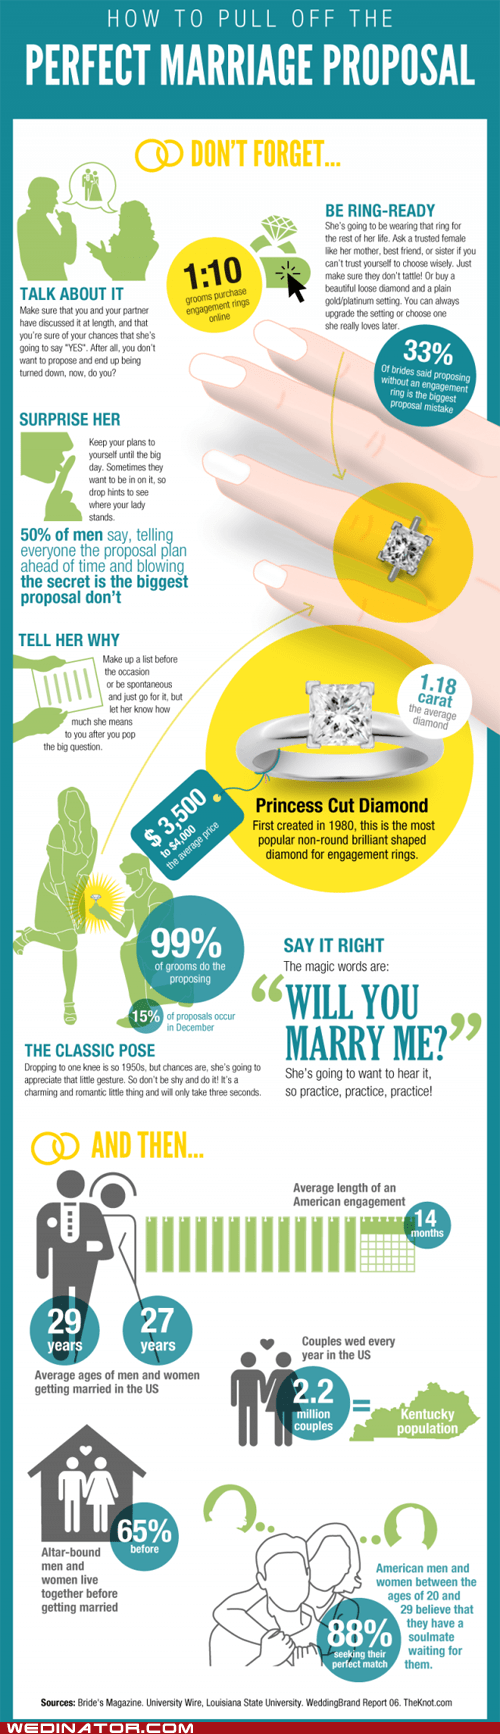 Pull Off a Perfect Proposal!